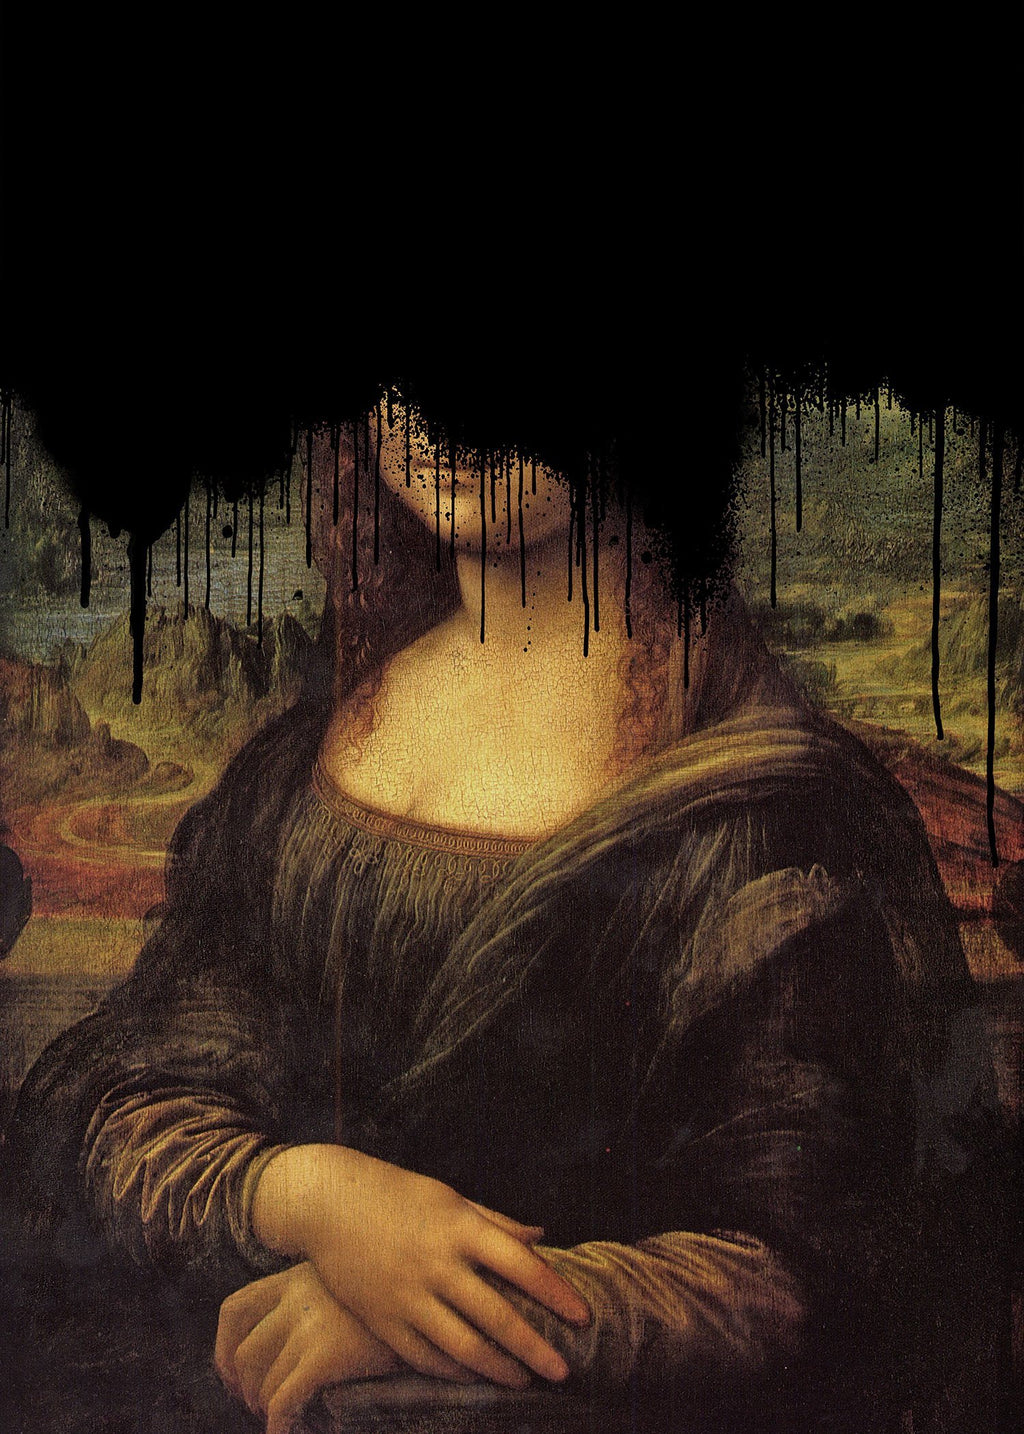 Drippy Mona Lisa Black Graffiti Print